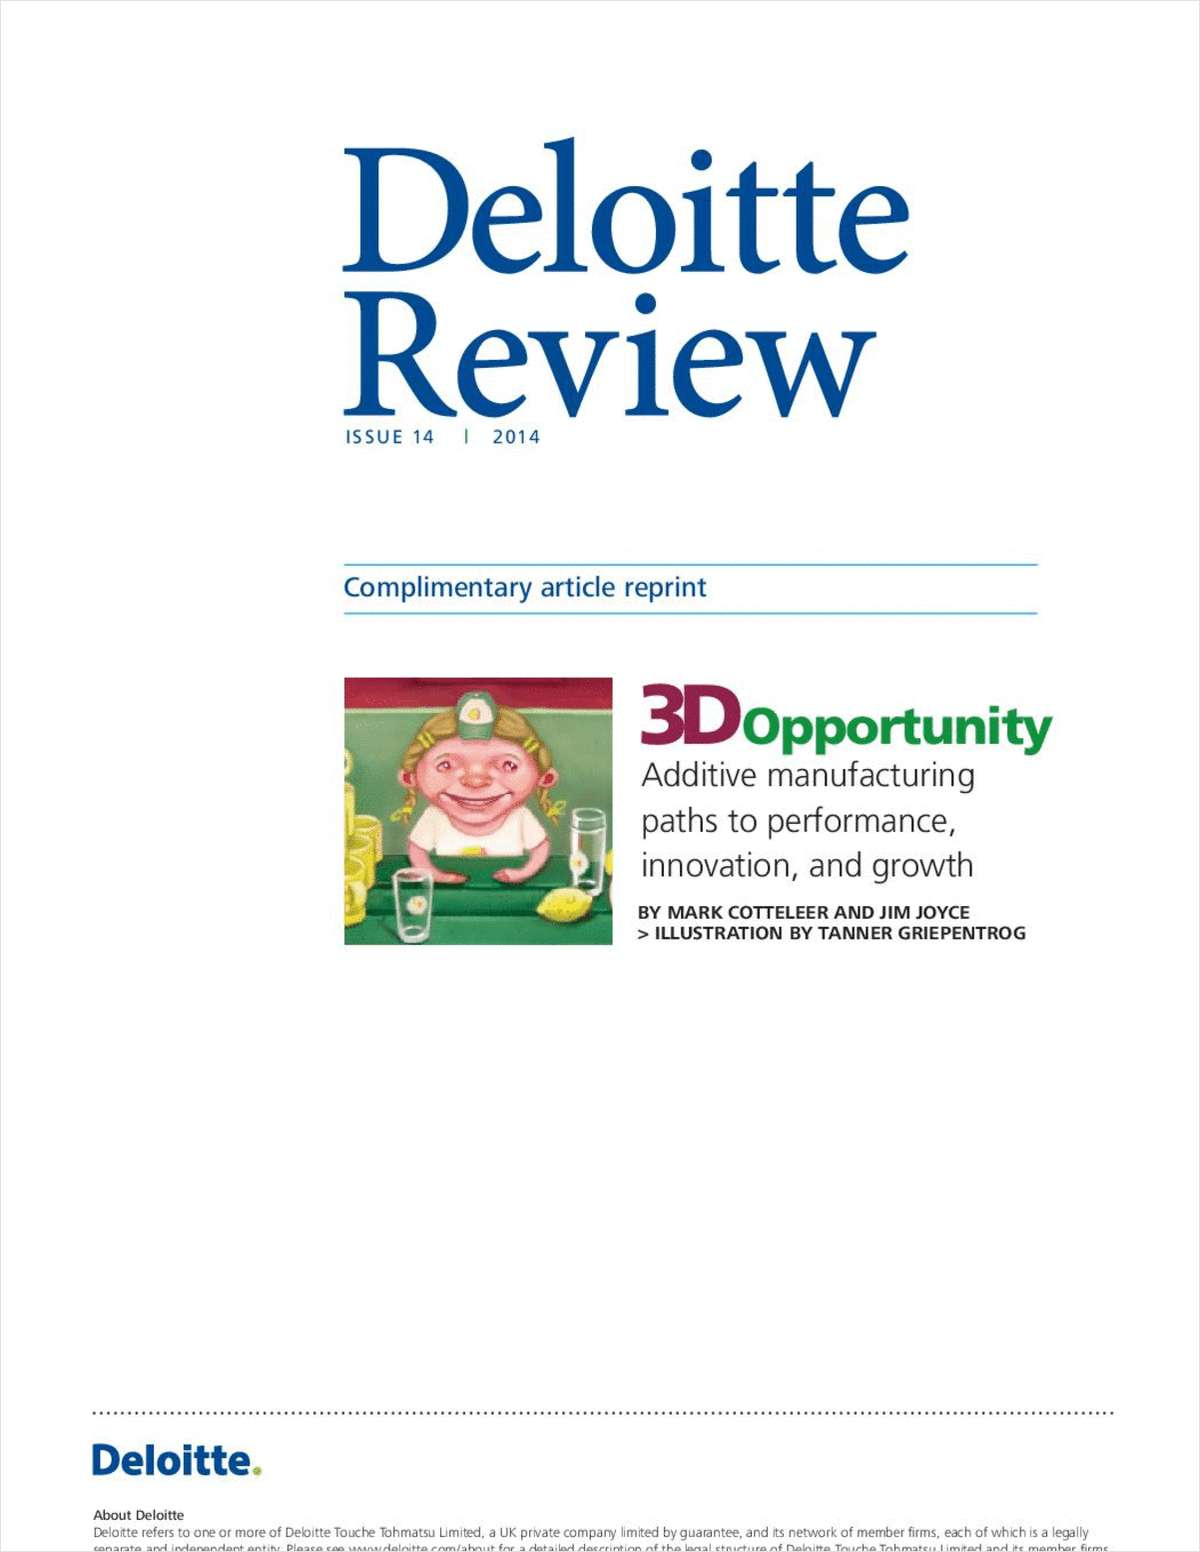 Deloitte Review: The 3D Opportunity to Increase Performance, Innovation and Growth